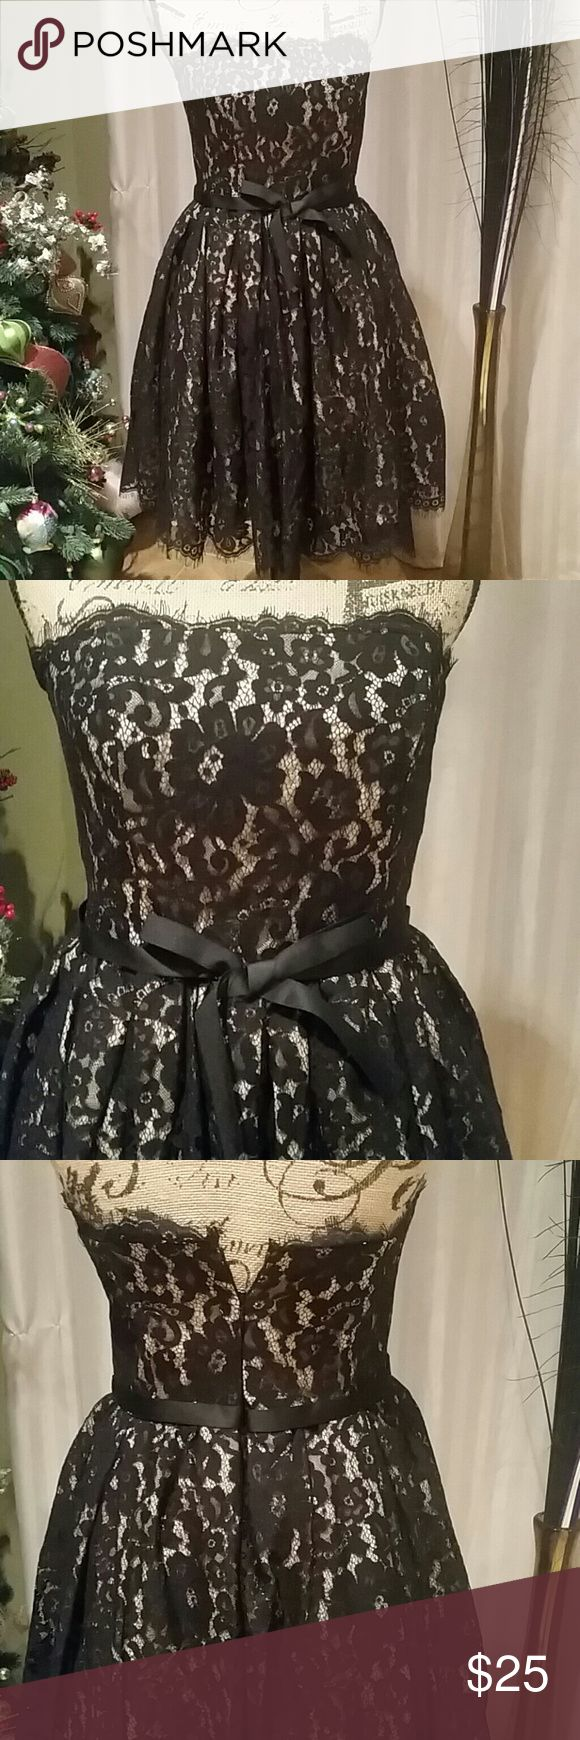 Black lace holiday dress Dress is black lace with nude lining.   Skirt is lined and has tulle for fulness.   Ribbon around waist.  Boning on top part of dress in breast area and on sides.   Zips up the back. Genuine Denim Co. Dresses Strapless